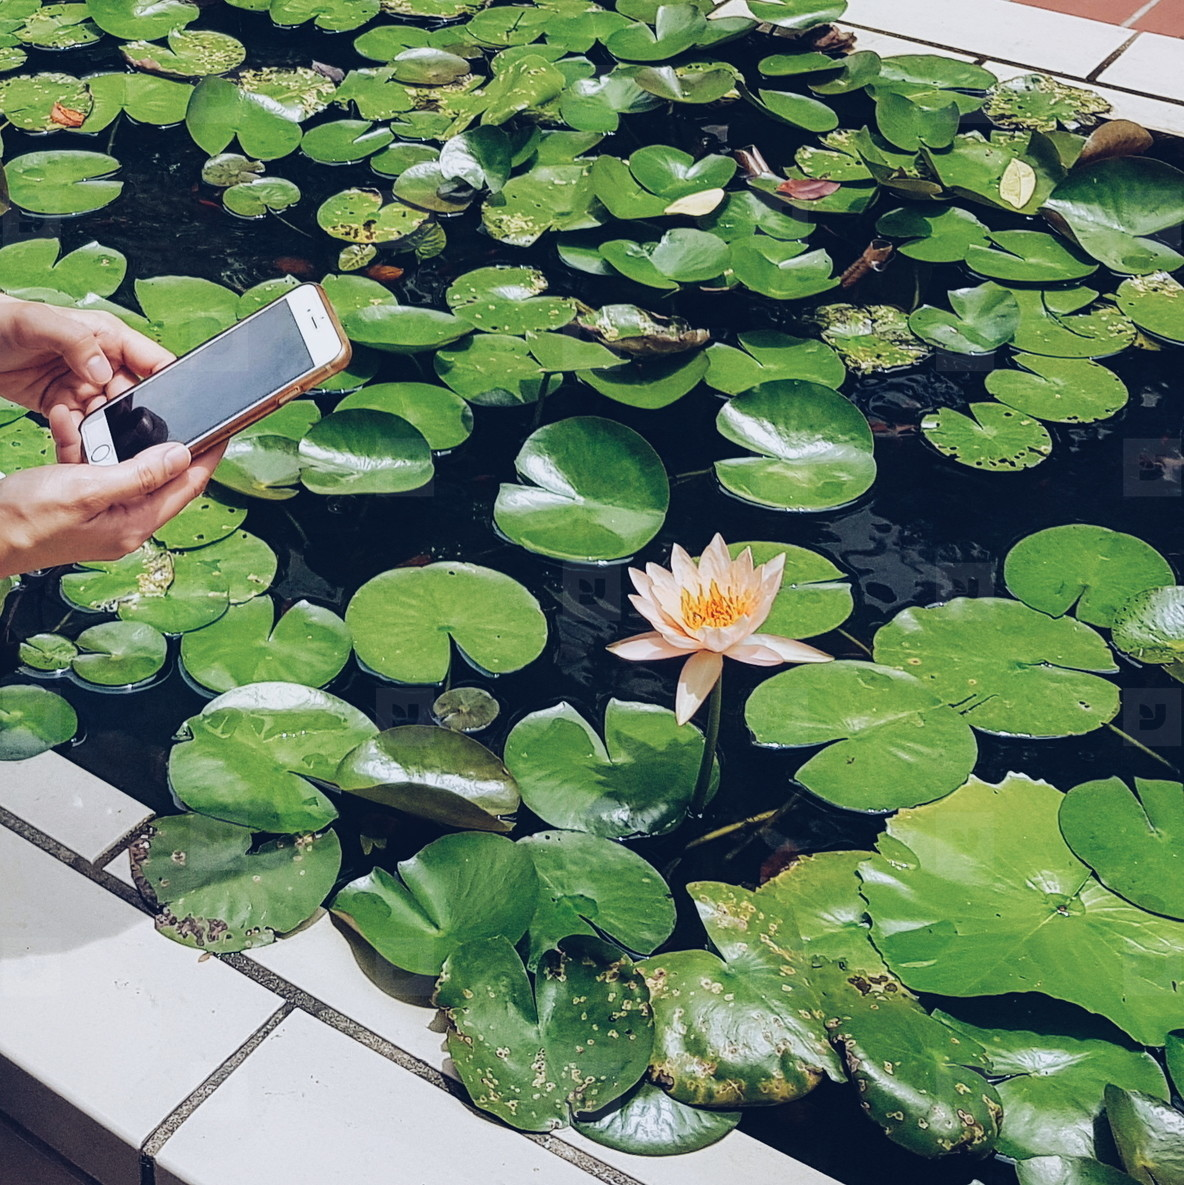 Taking photos of water lily